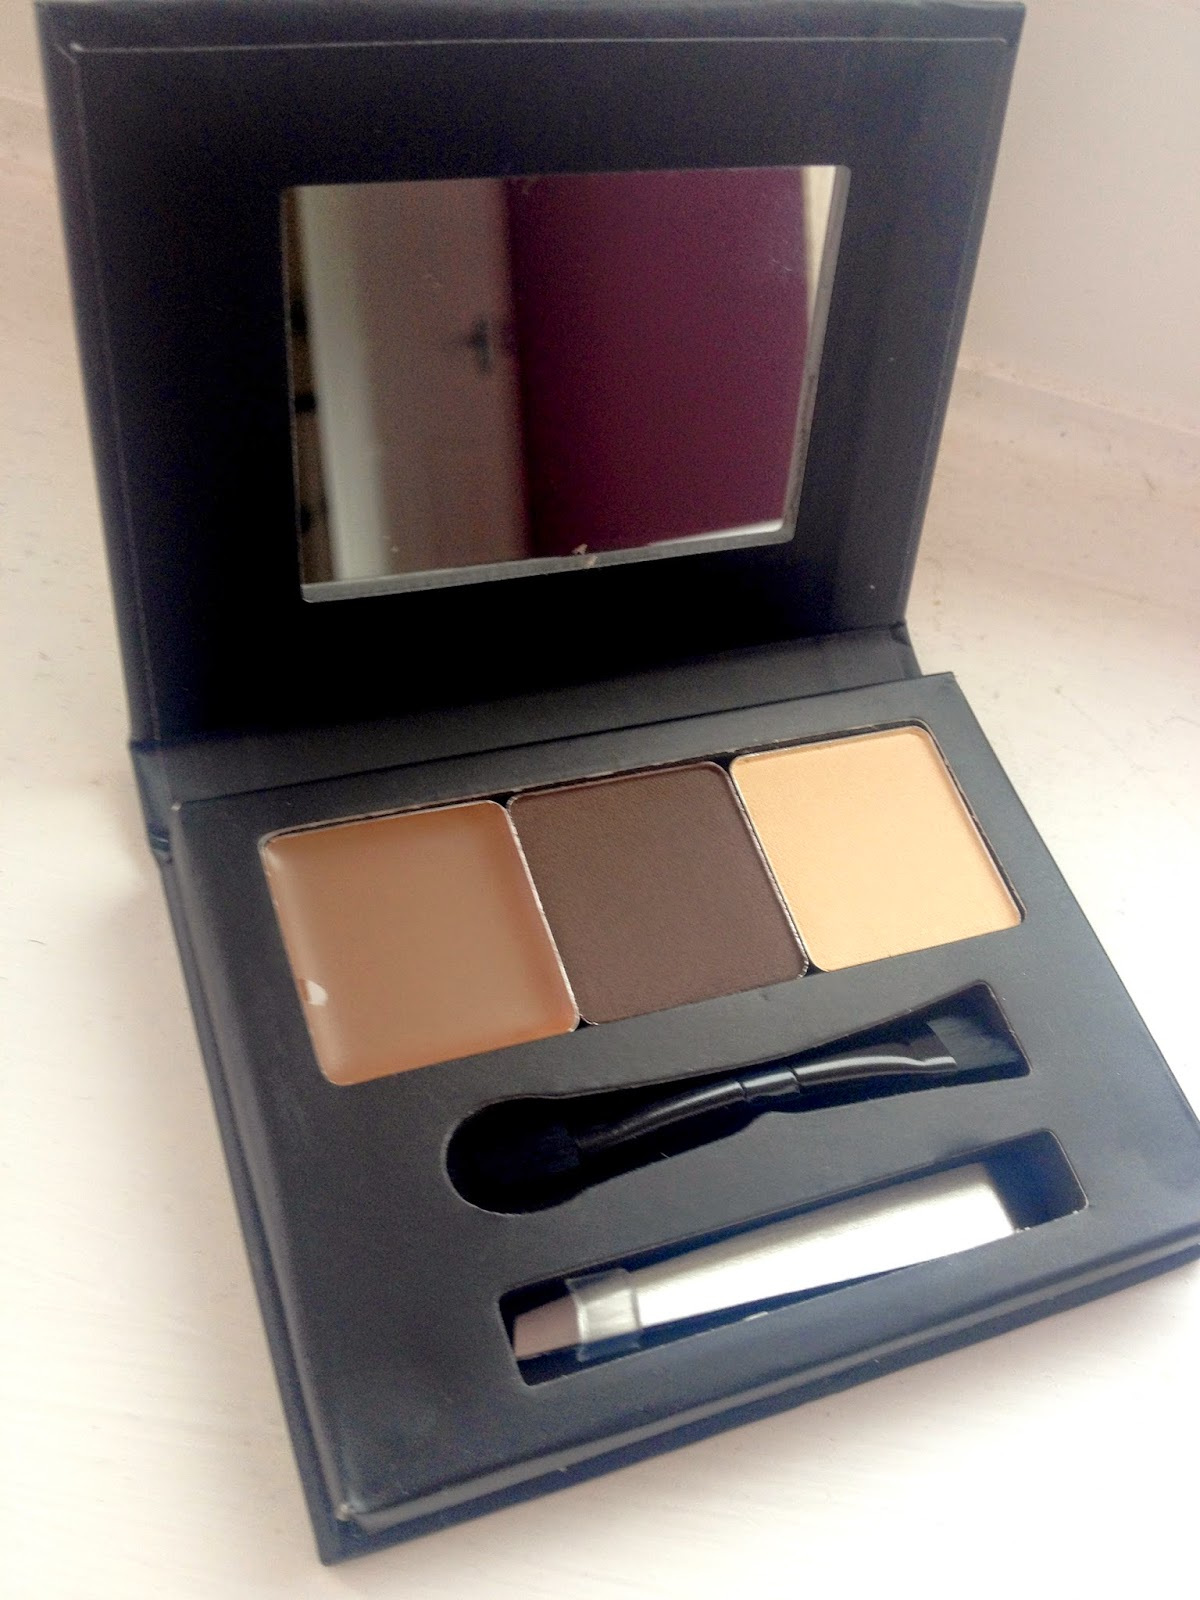 Barry M Brow Kit | DollfaceBlogs